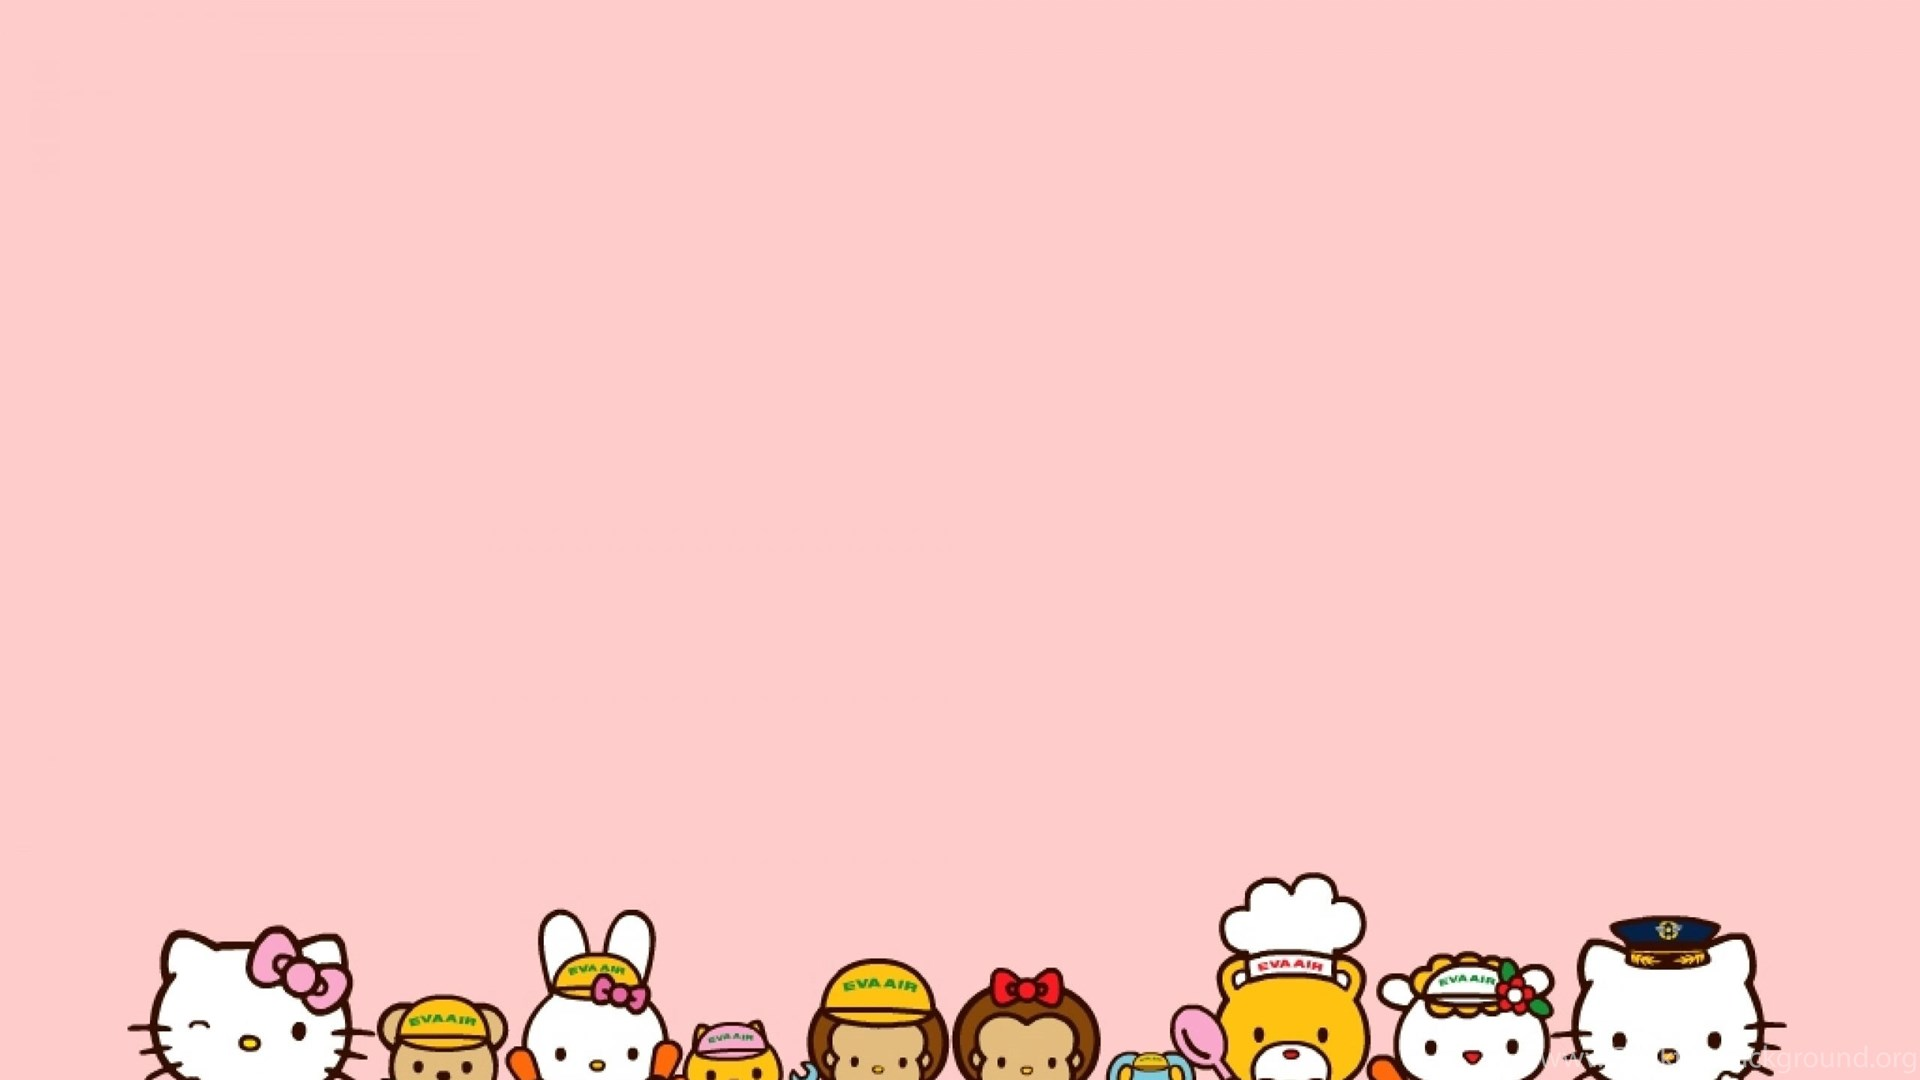 Gudetama Wallpaper Iphone X Picture Of Hello Kitty Wallpapers Original Picture And